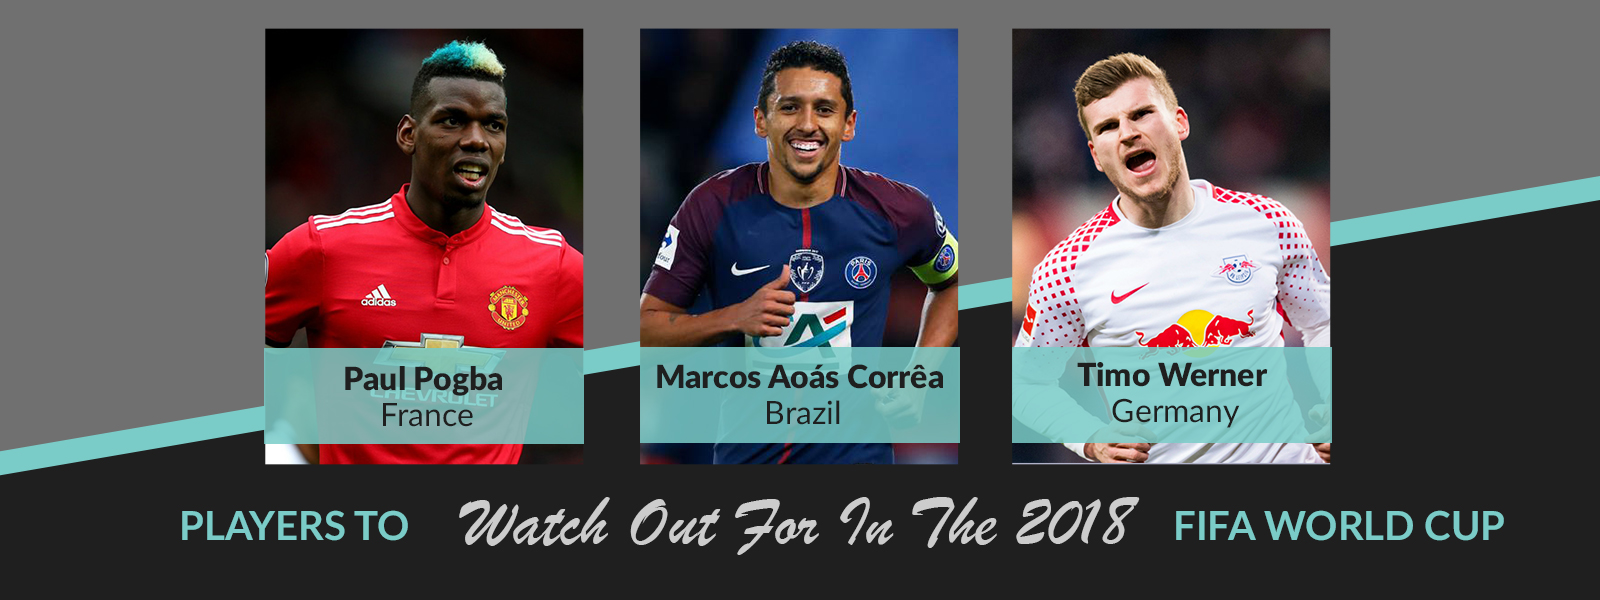 Players to Watch Out for in The 2018 FIFA World Cup